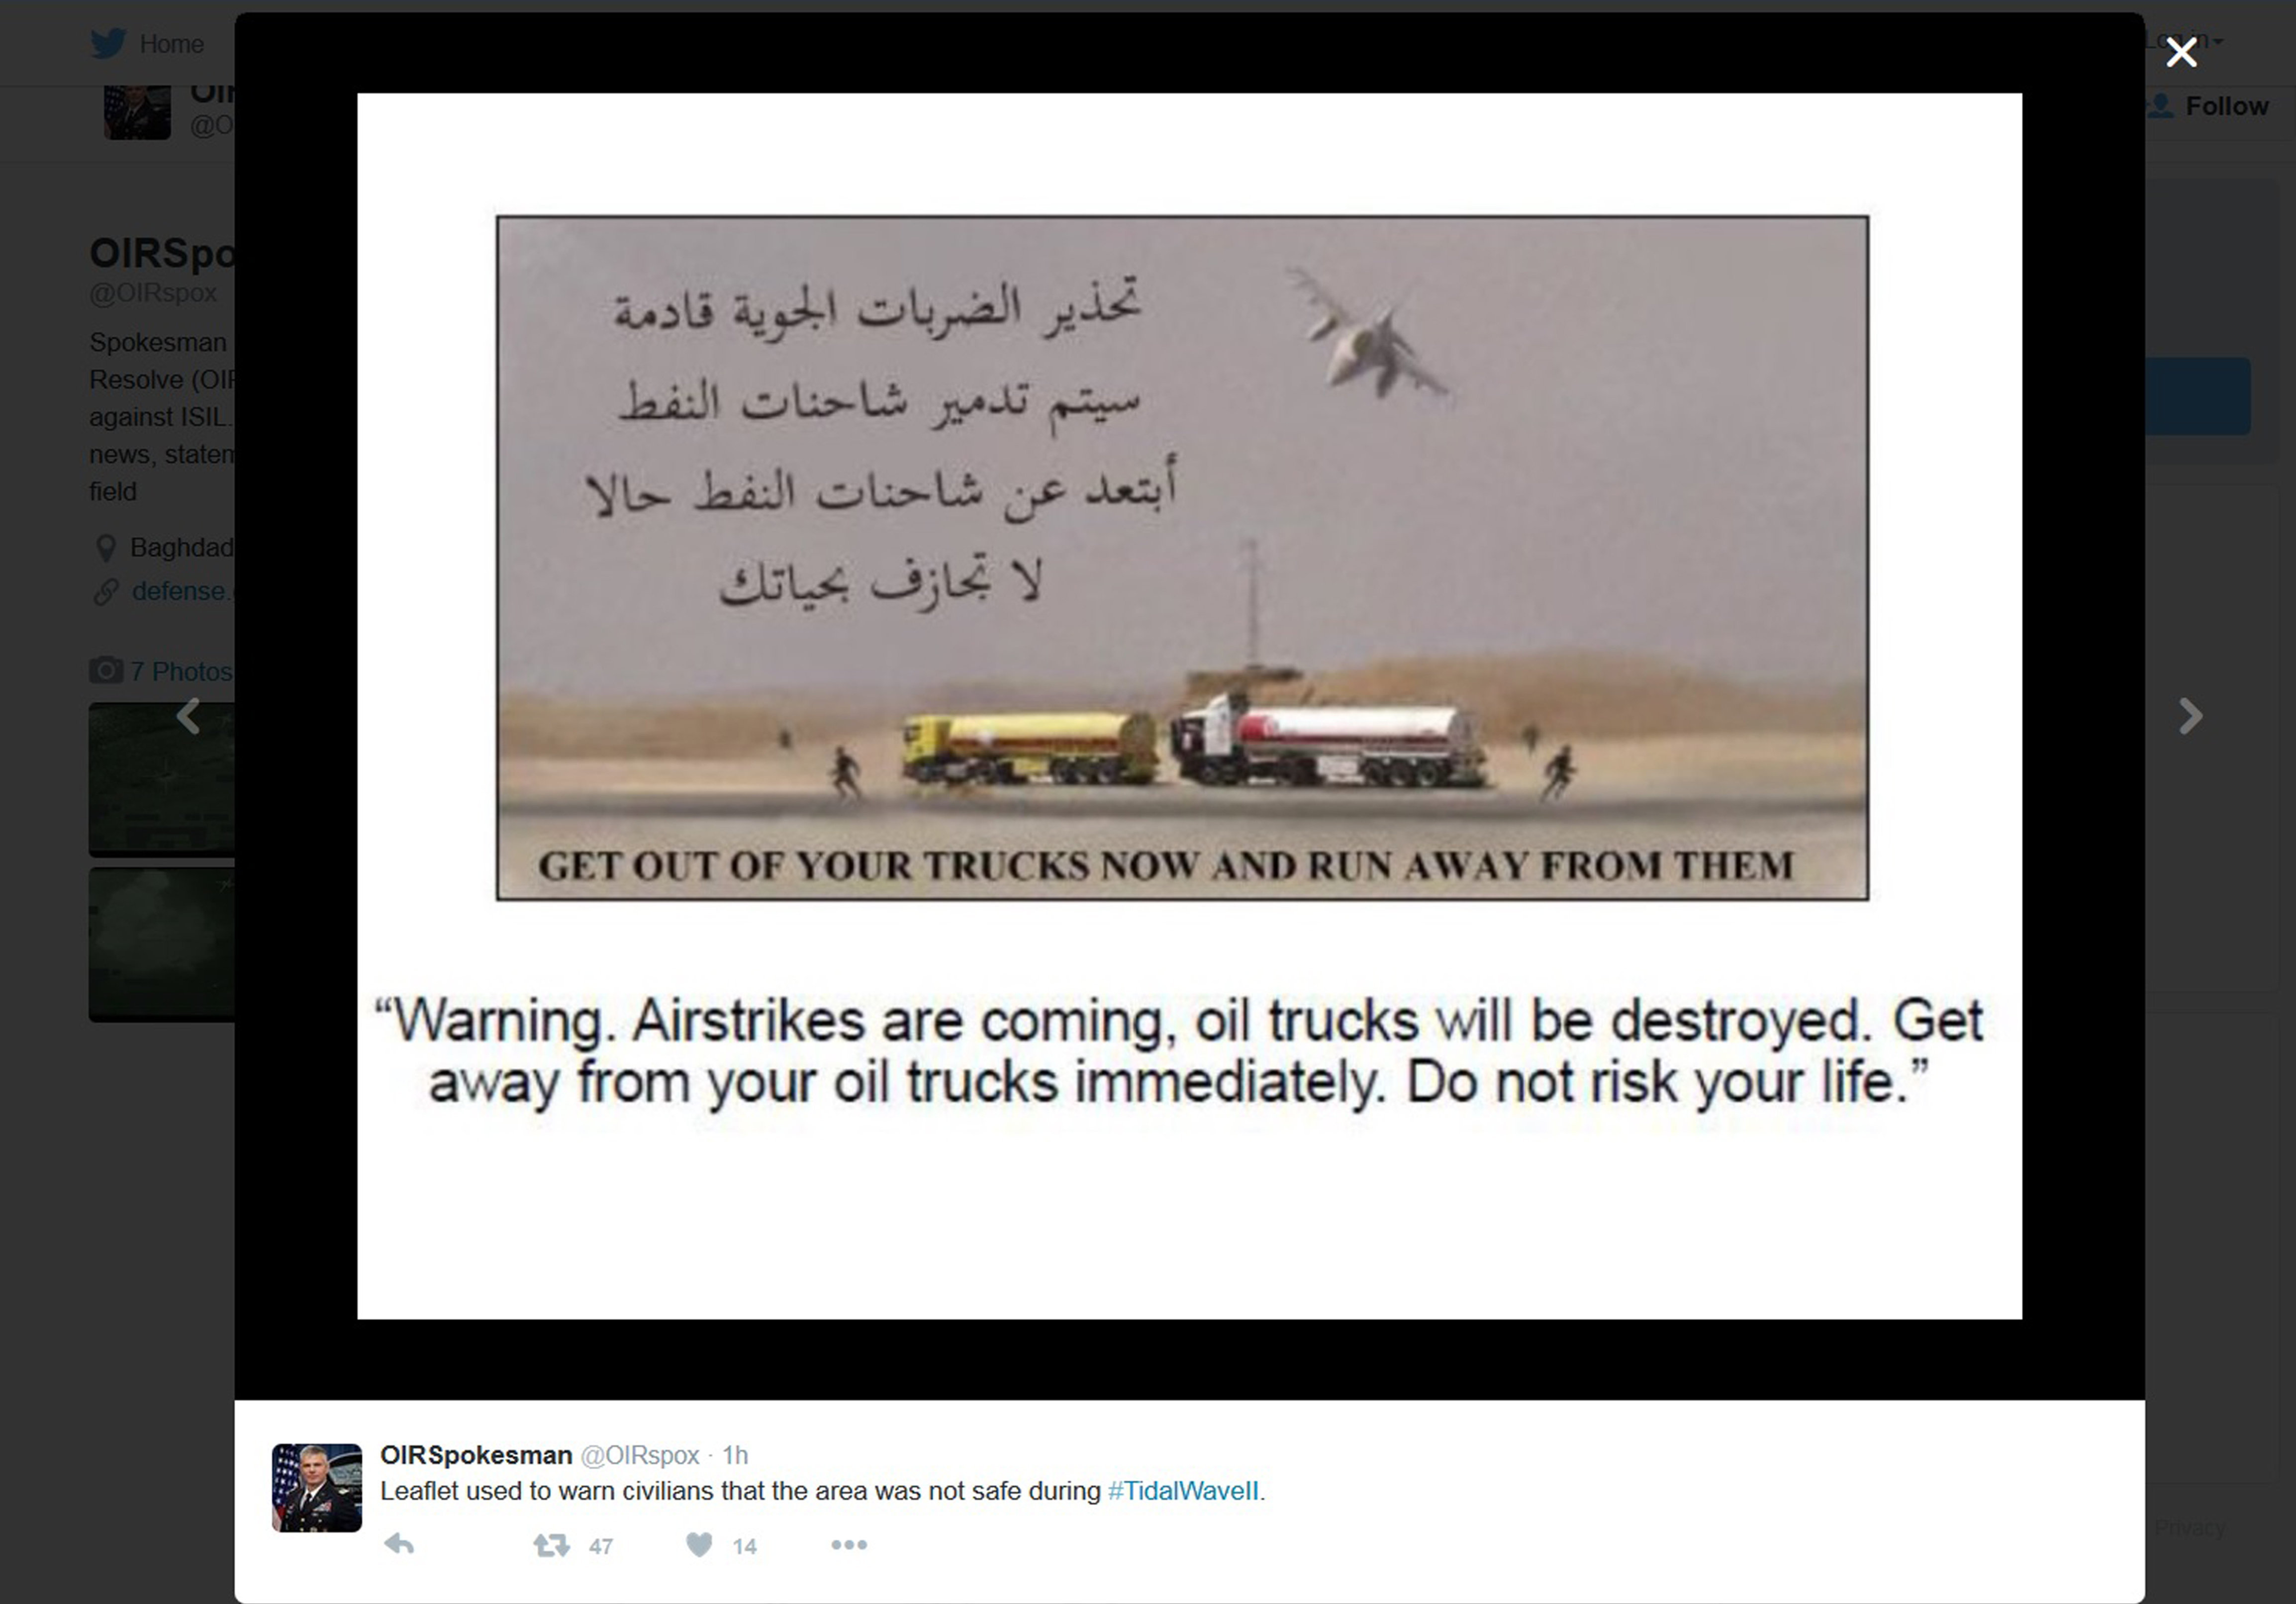 This November 18, 2015 image from a US Department of Defense Twitter site of the Spokesman for Operation Inherent Resolve (OIR), the US military operation against ISIL, shows a leaflet warning civilians of upcoming airstrikes